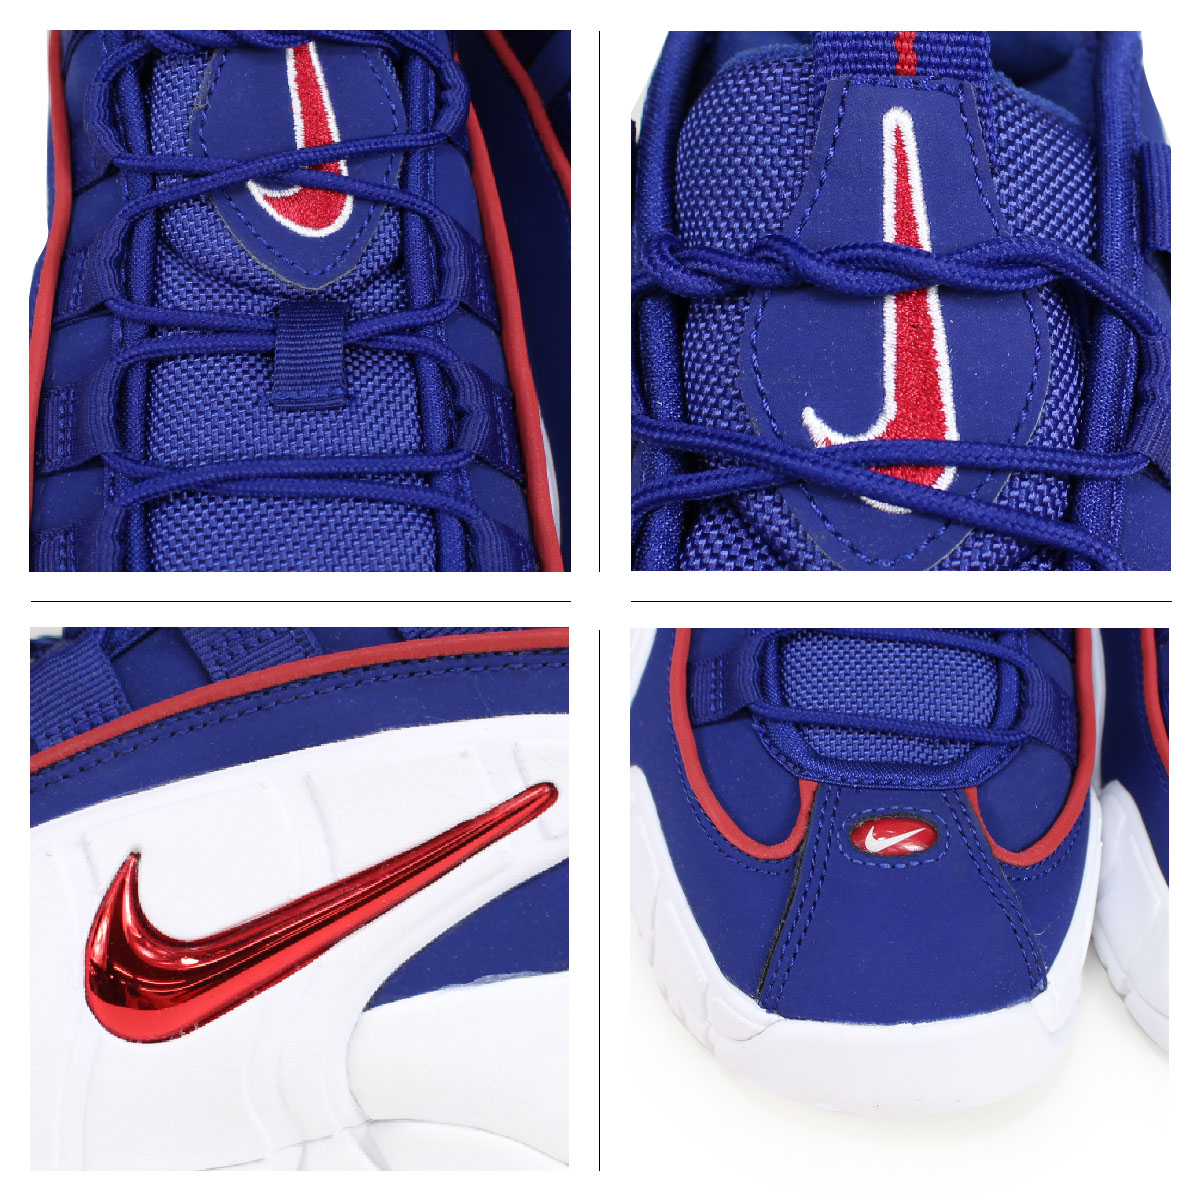 037c831470 ... Nike NIKE Air Max penny Lady's sneakers AIR MAX PENNY LE GS 315,519-400  blue ...